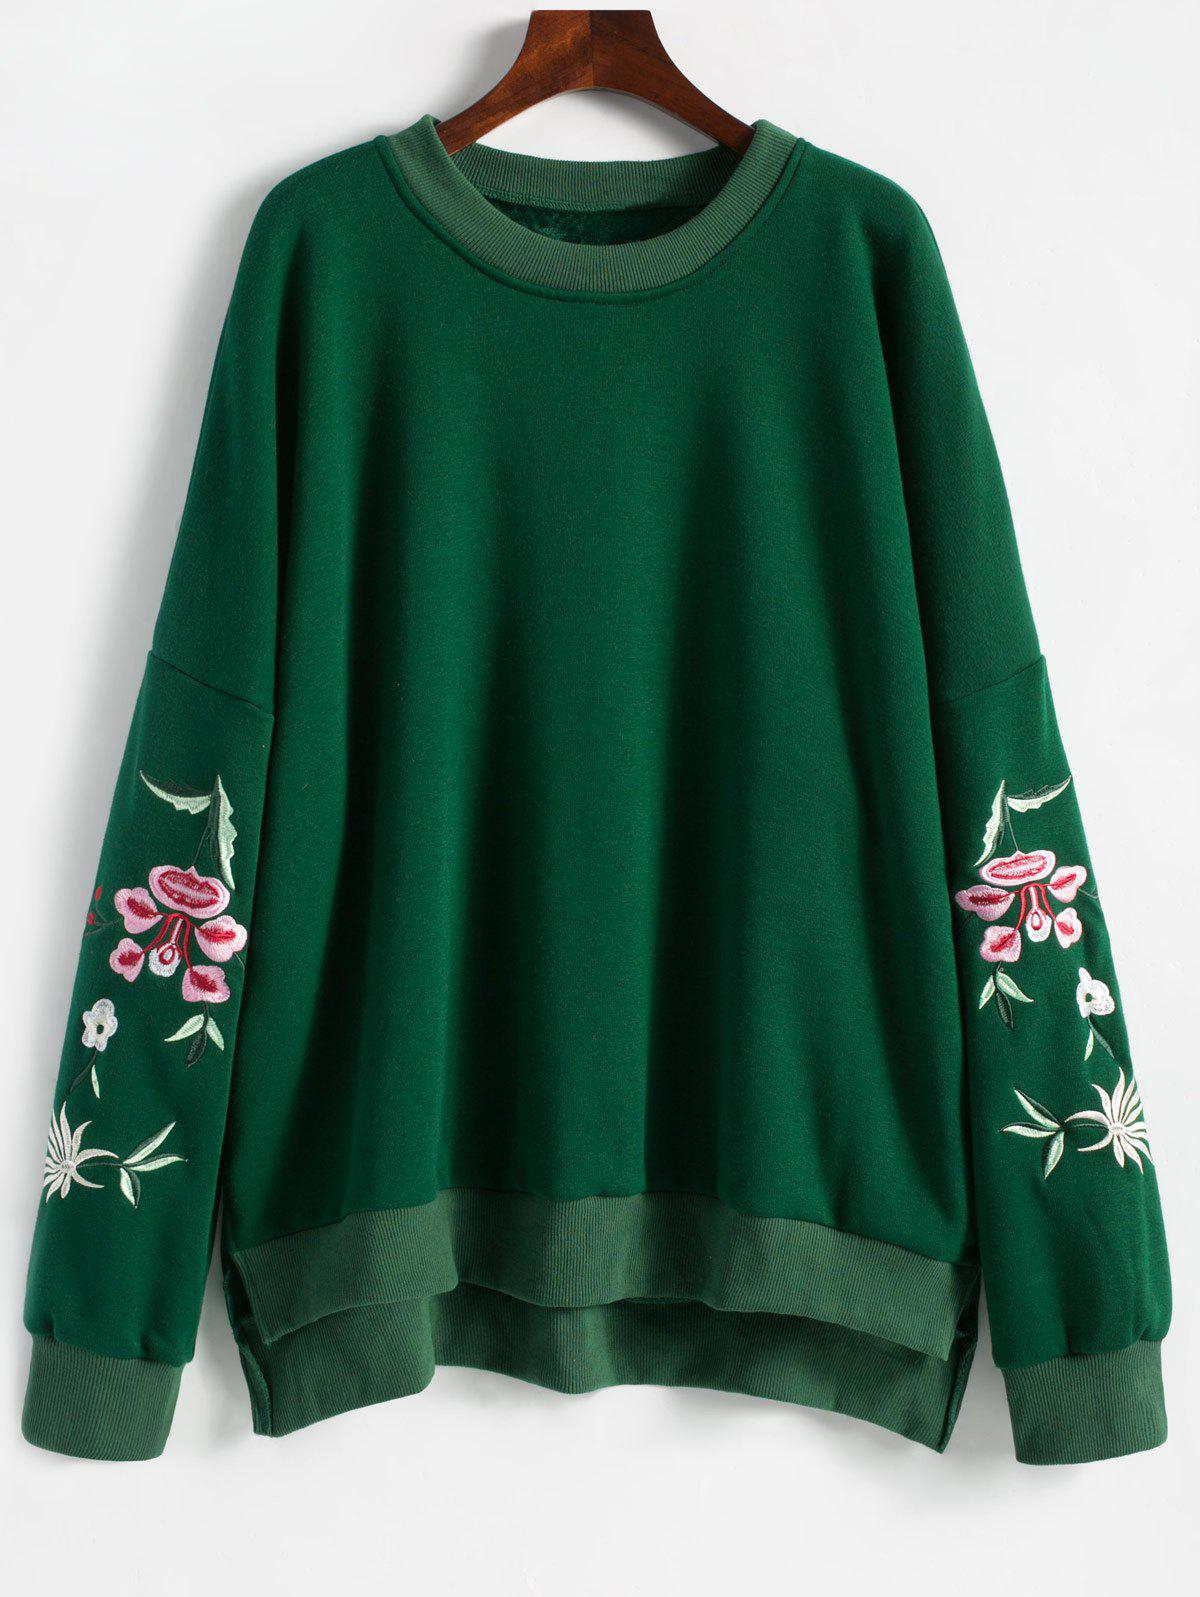 Floral Embroidered Plus Size Fleece Lined  Sweatshirt - GREEN 2XL